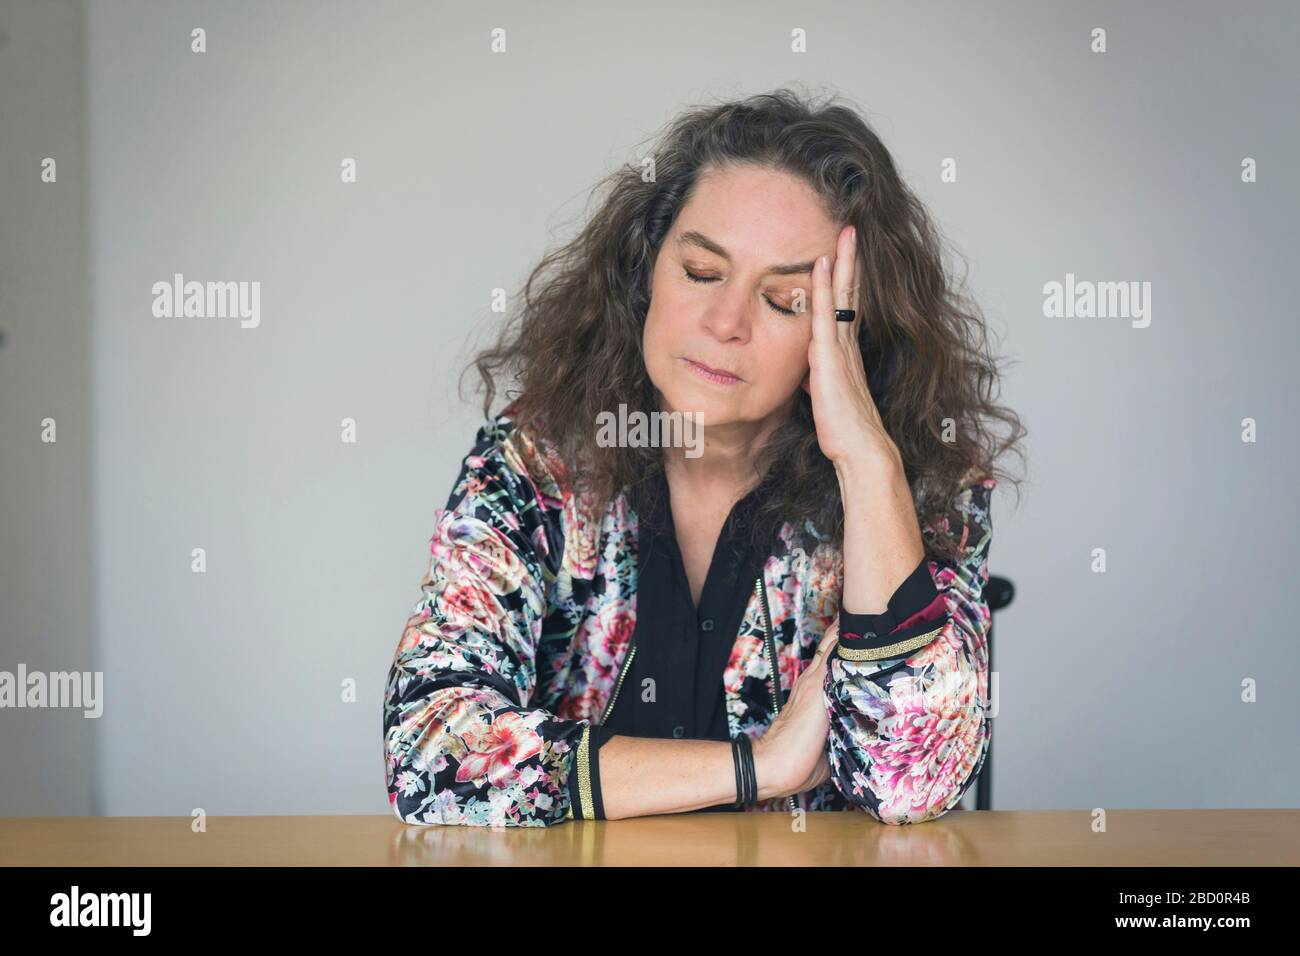 Depressed or unwell pretty middle-aged woman seated at a table indoors resting her head on her hand with closed eyes and a serious withdrawn expressio Stock Photo